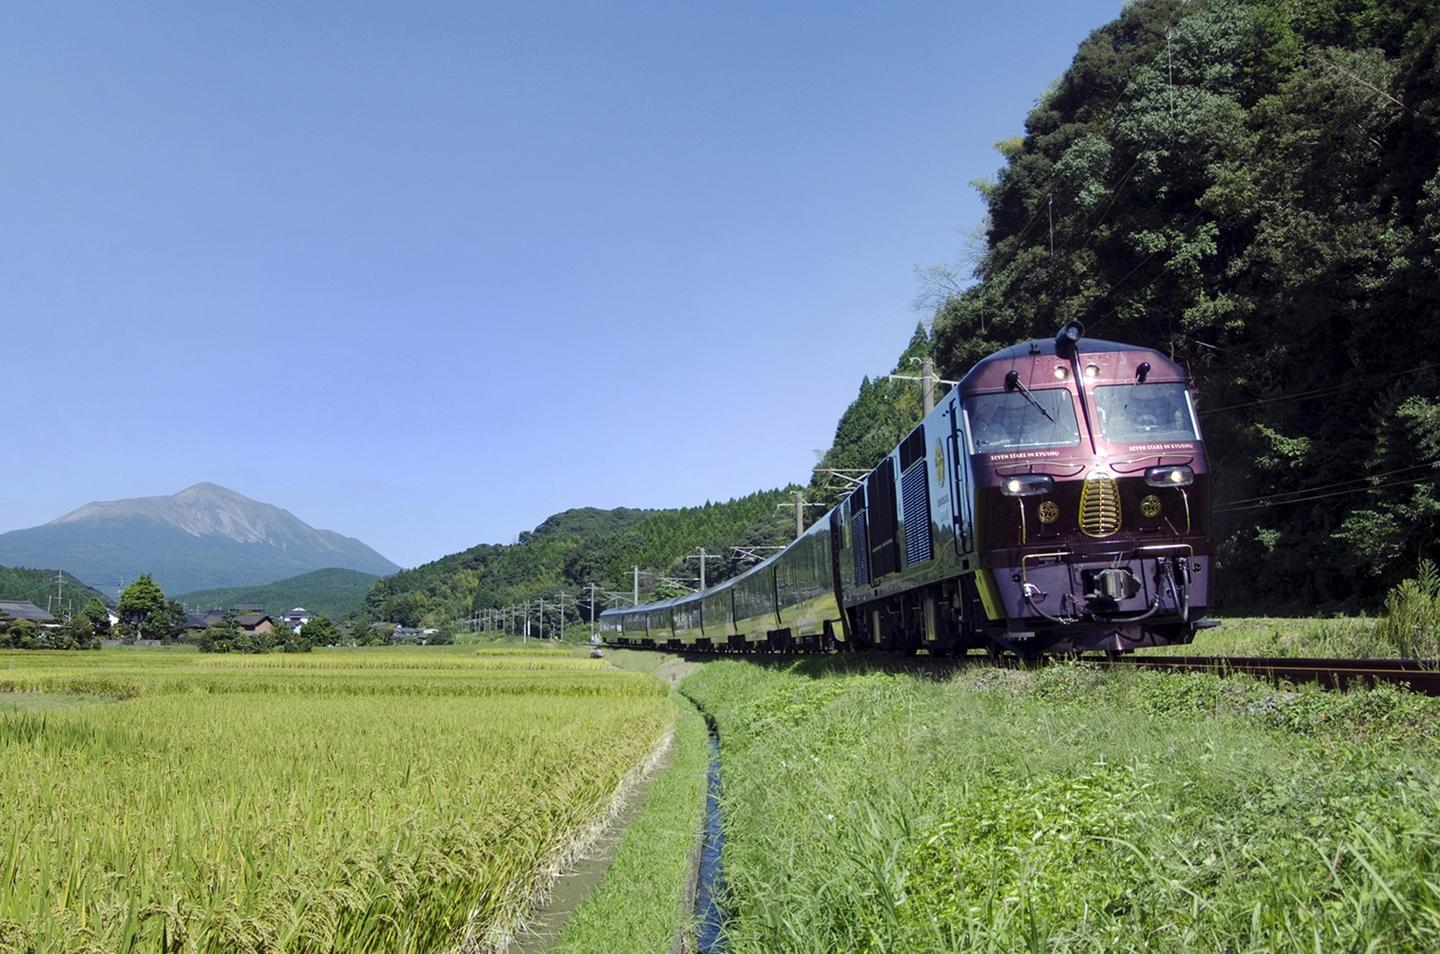 Departing from the port of Fukuoka, the luxury train travels through the northwest of Kyushu and includes a visit to the township of Mt. Aso (the biggest active volcano in Japan)